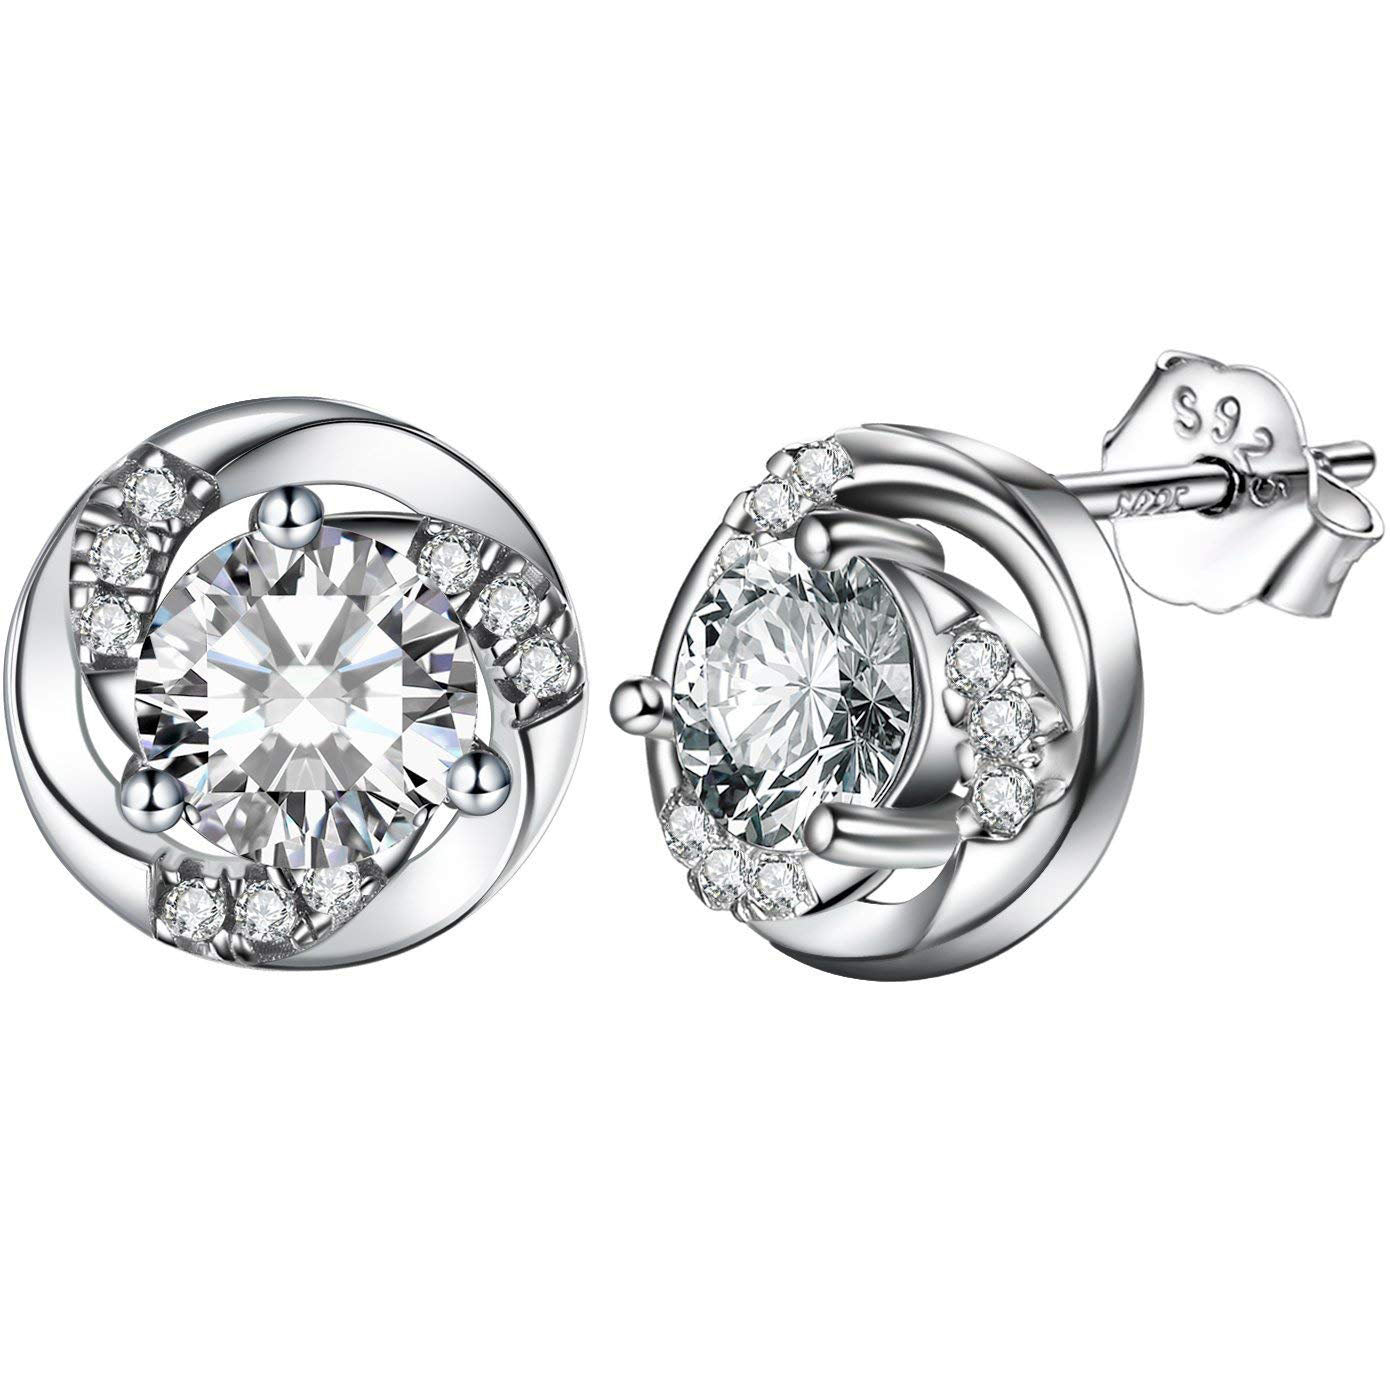 S925 Sterling Silver Fashion Personality Micro-Inlaid Zircon Vortex Earrings Jewelry Cross-Border Special